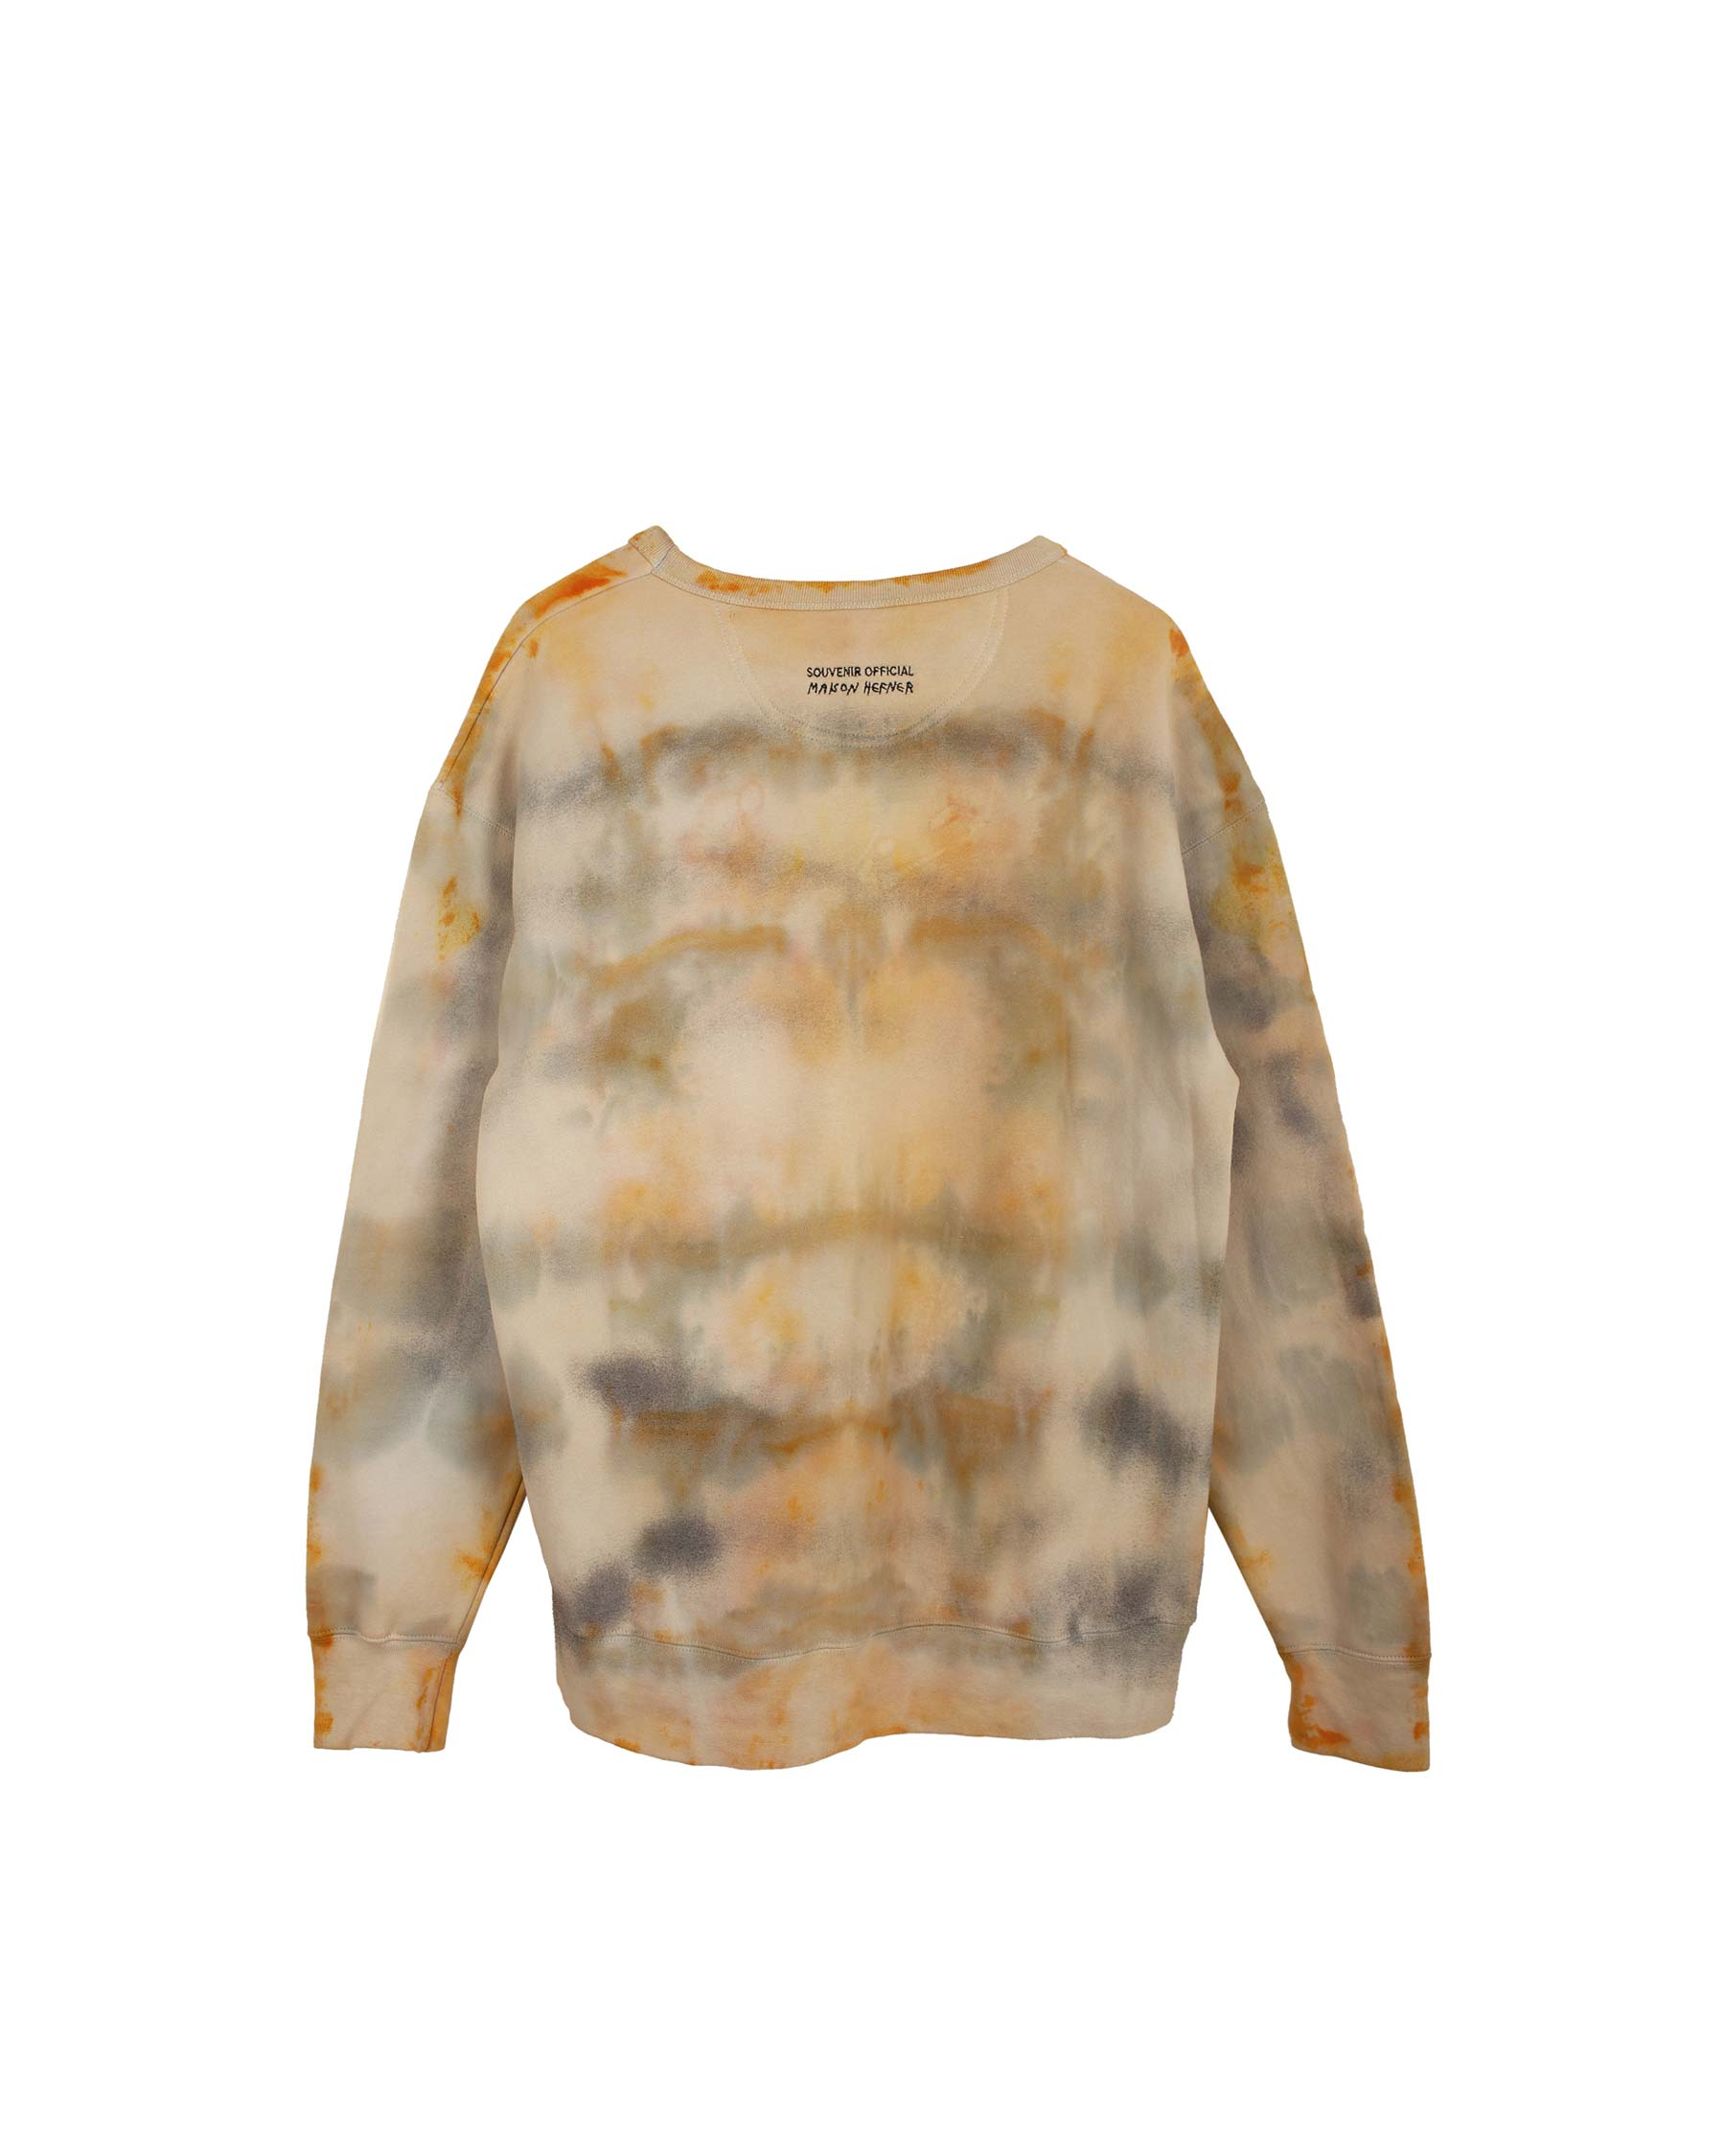 TIE DYE SPRAY CREWNECK LARGE #2